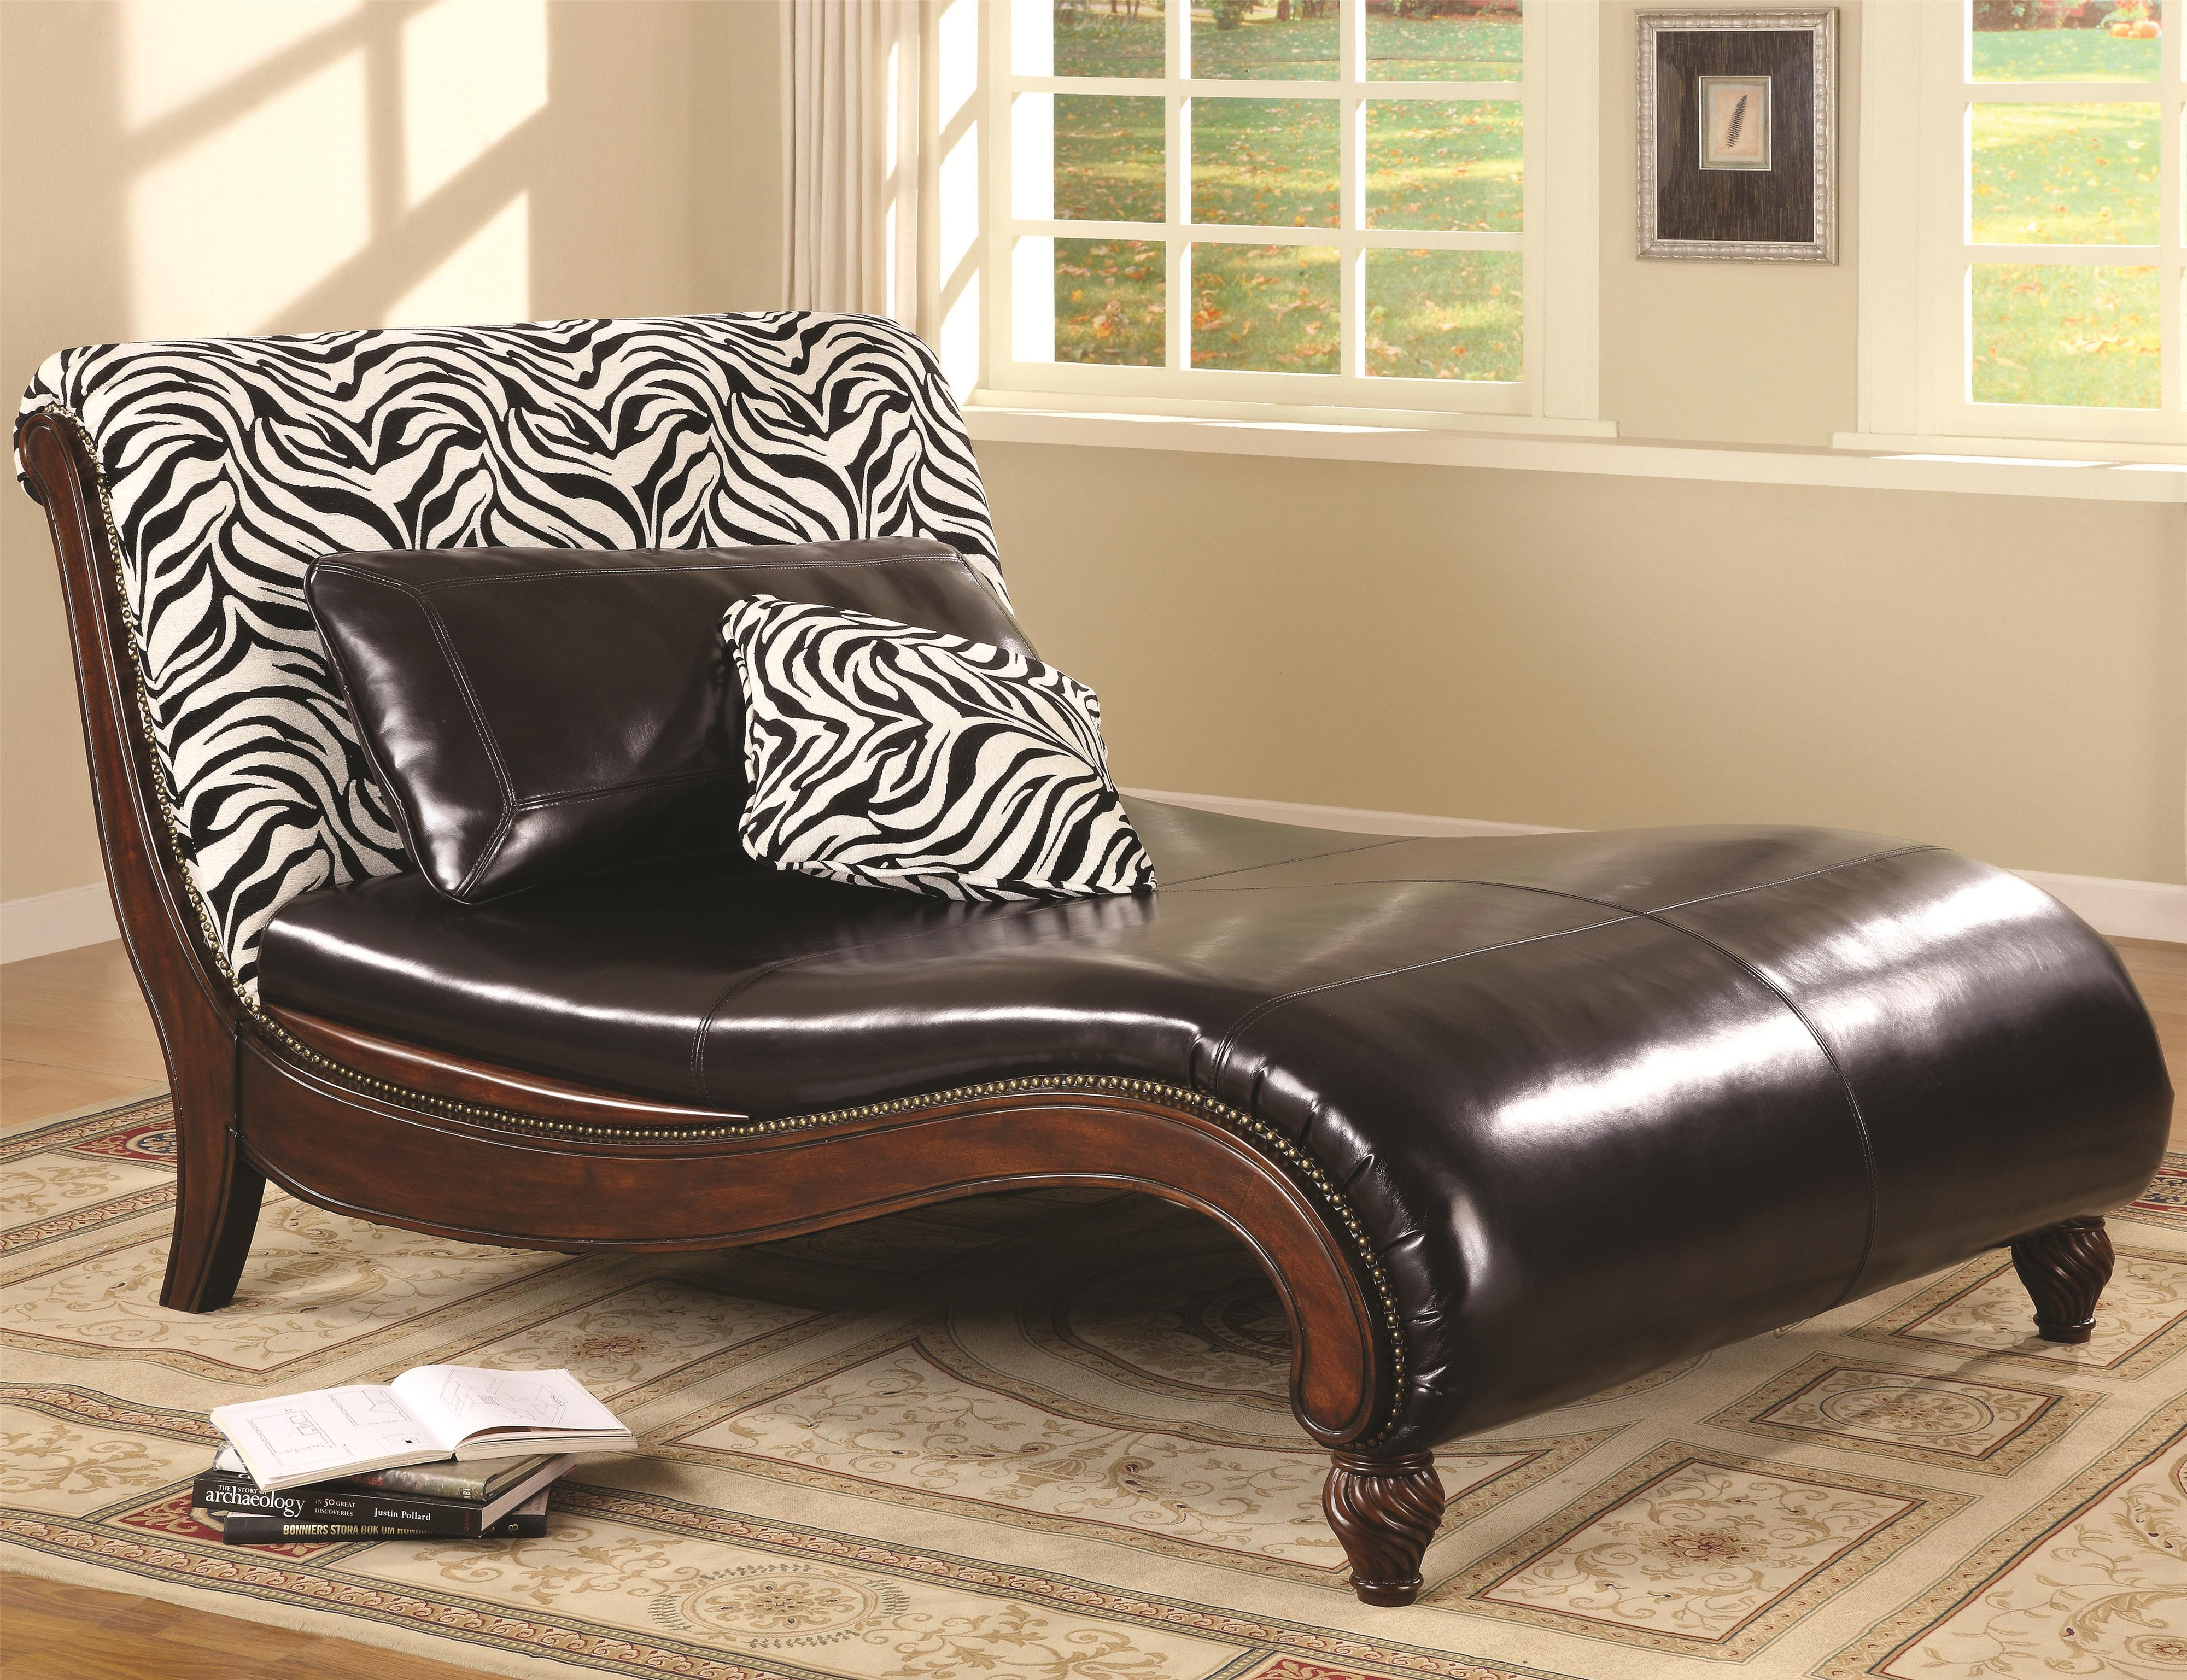 Elegant Sleigh Lounge Beds Animal Print Accents (Image 7 of 12)